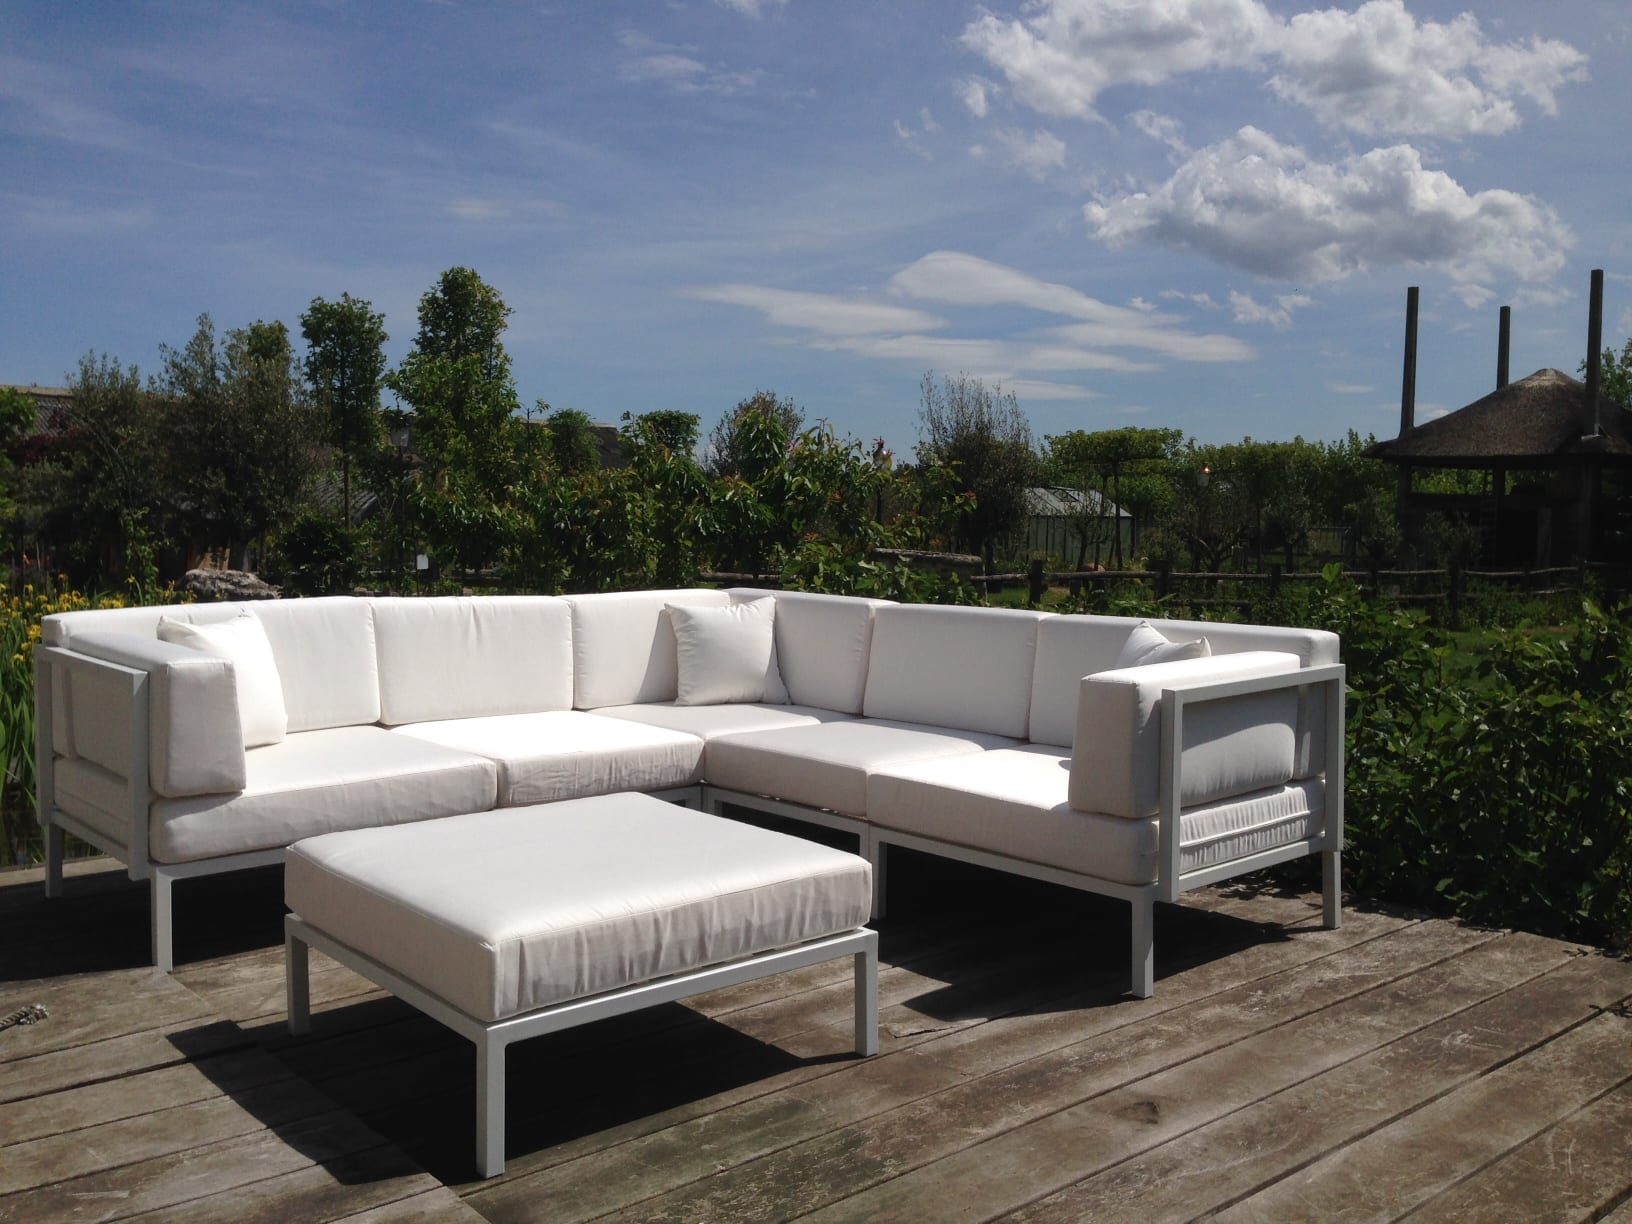 Tuin Loungeset Outlet : Outlet tuinset latest stunning tuinmeubel outlet megadump